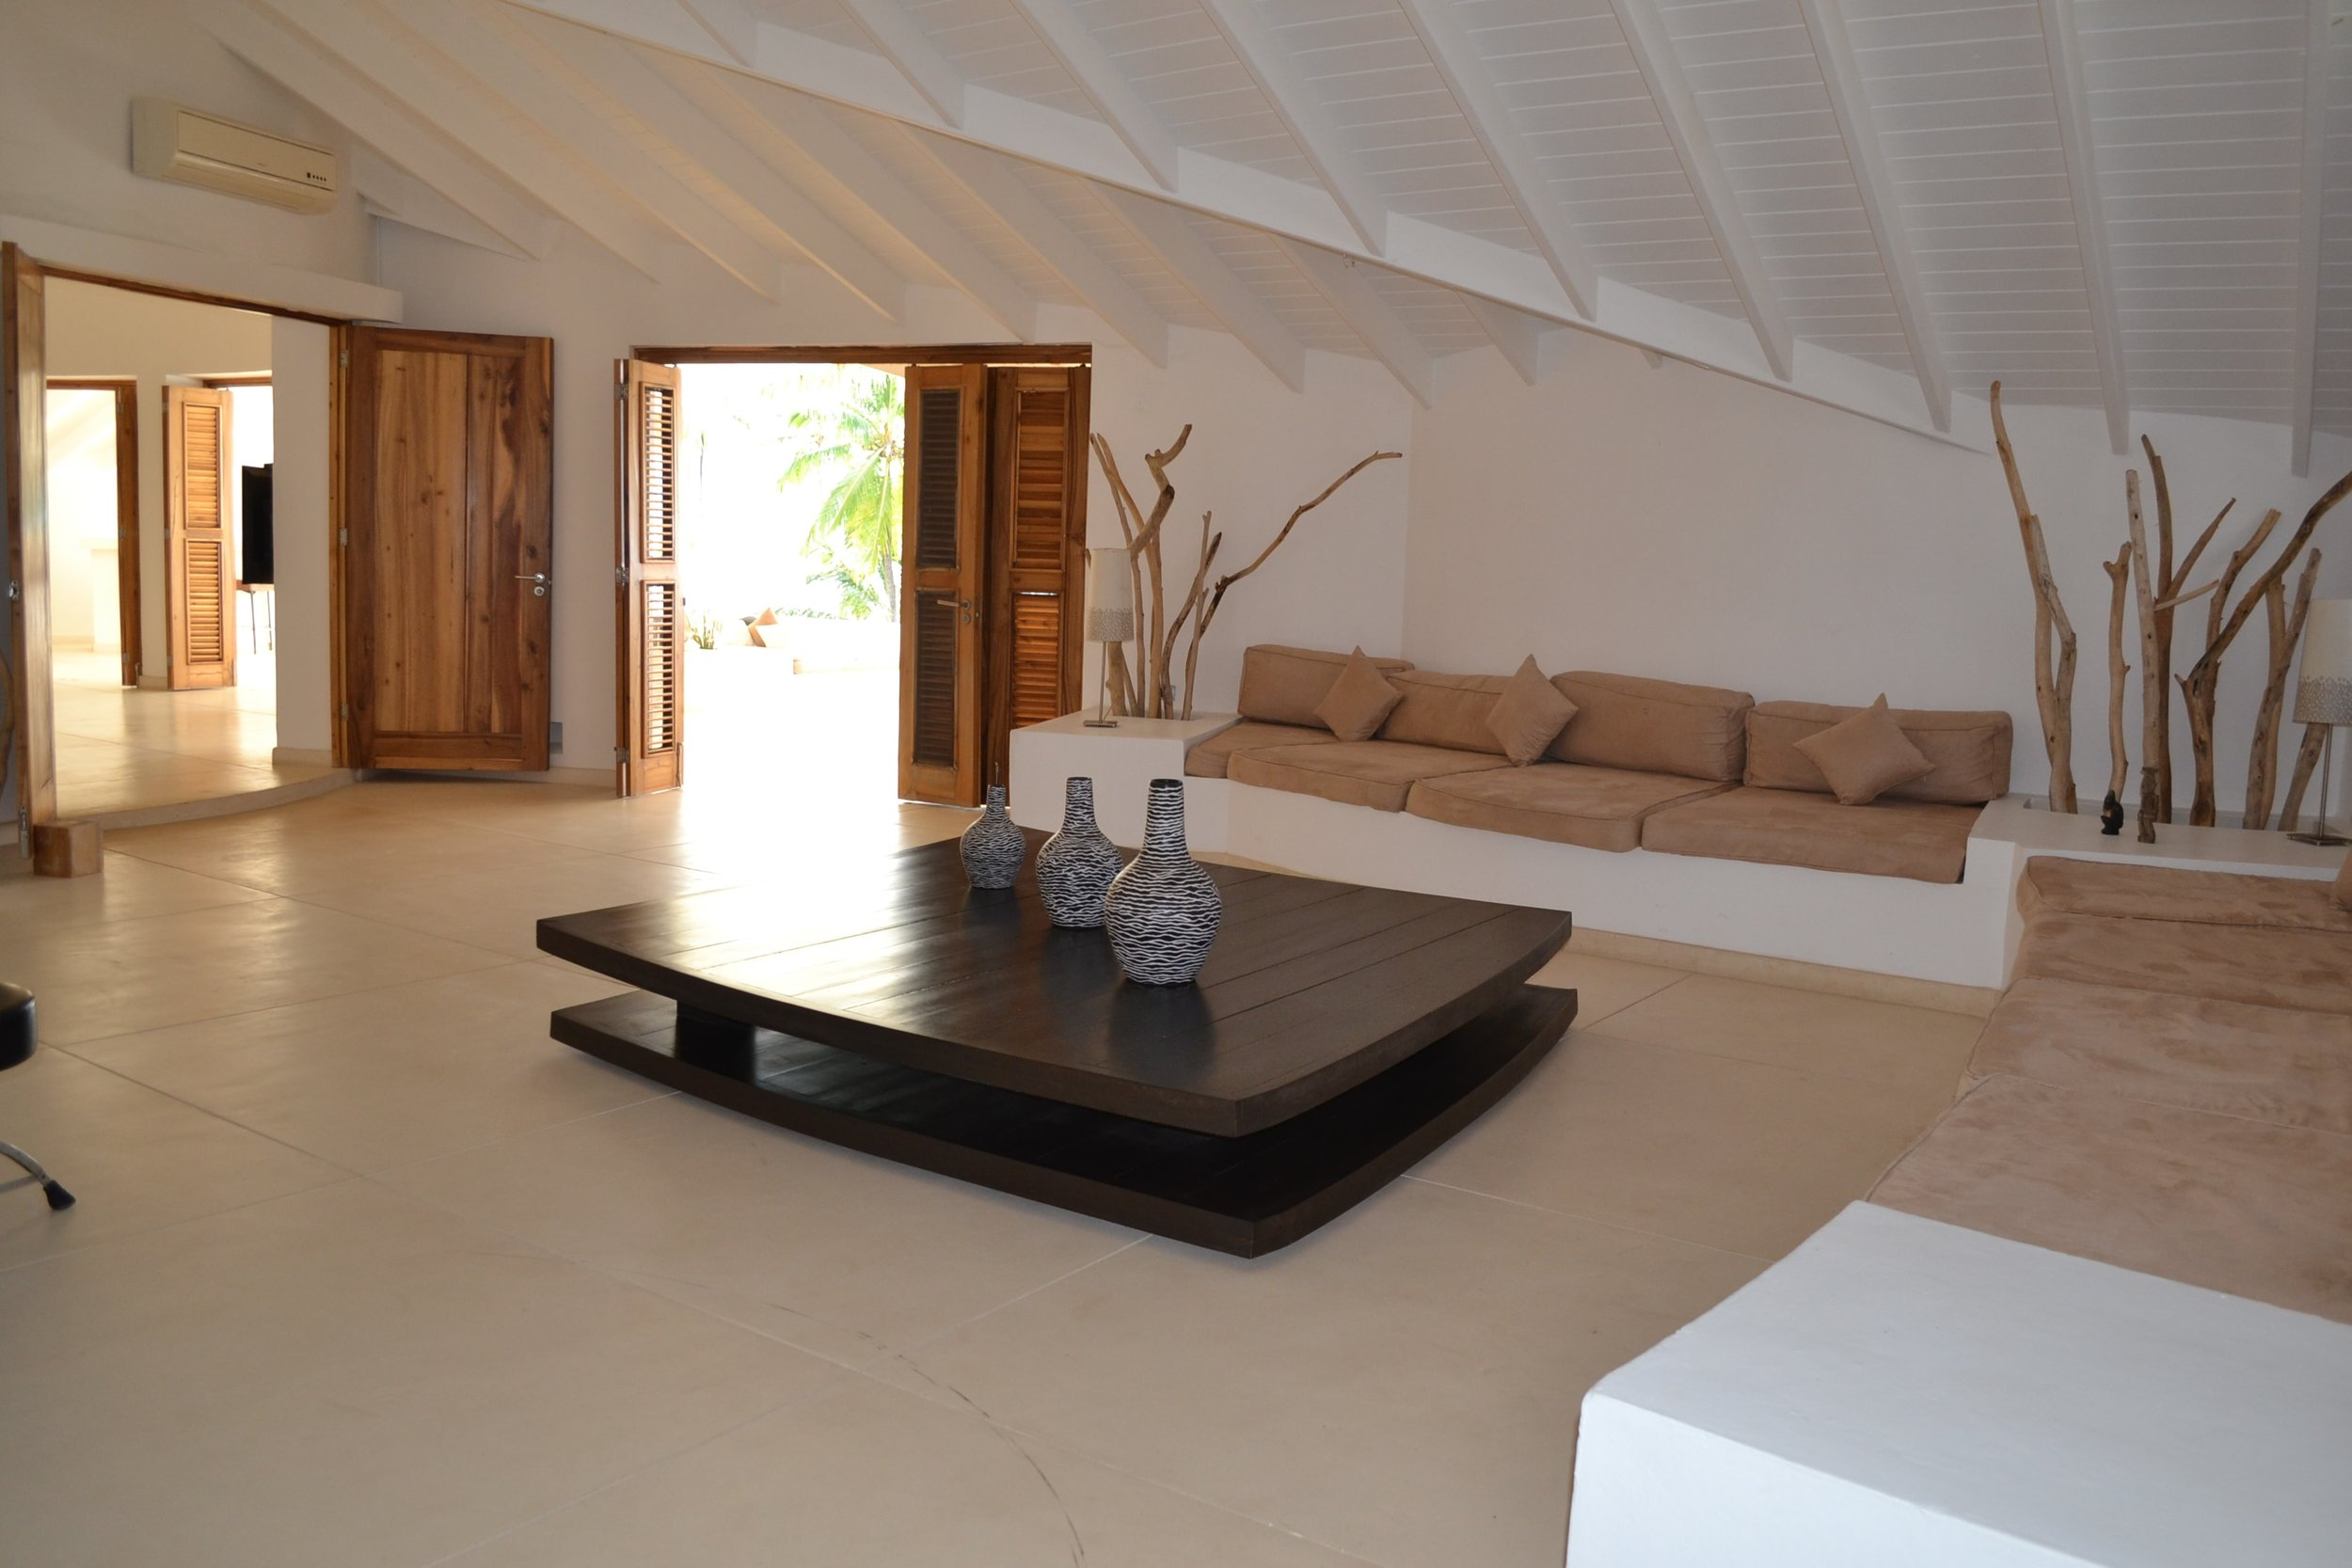 Villa for Sale Las Terrenas living room 2.JPG